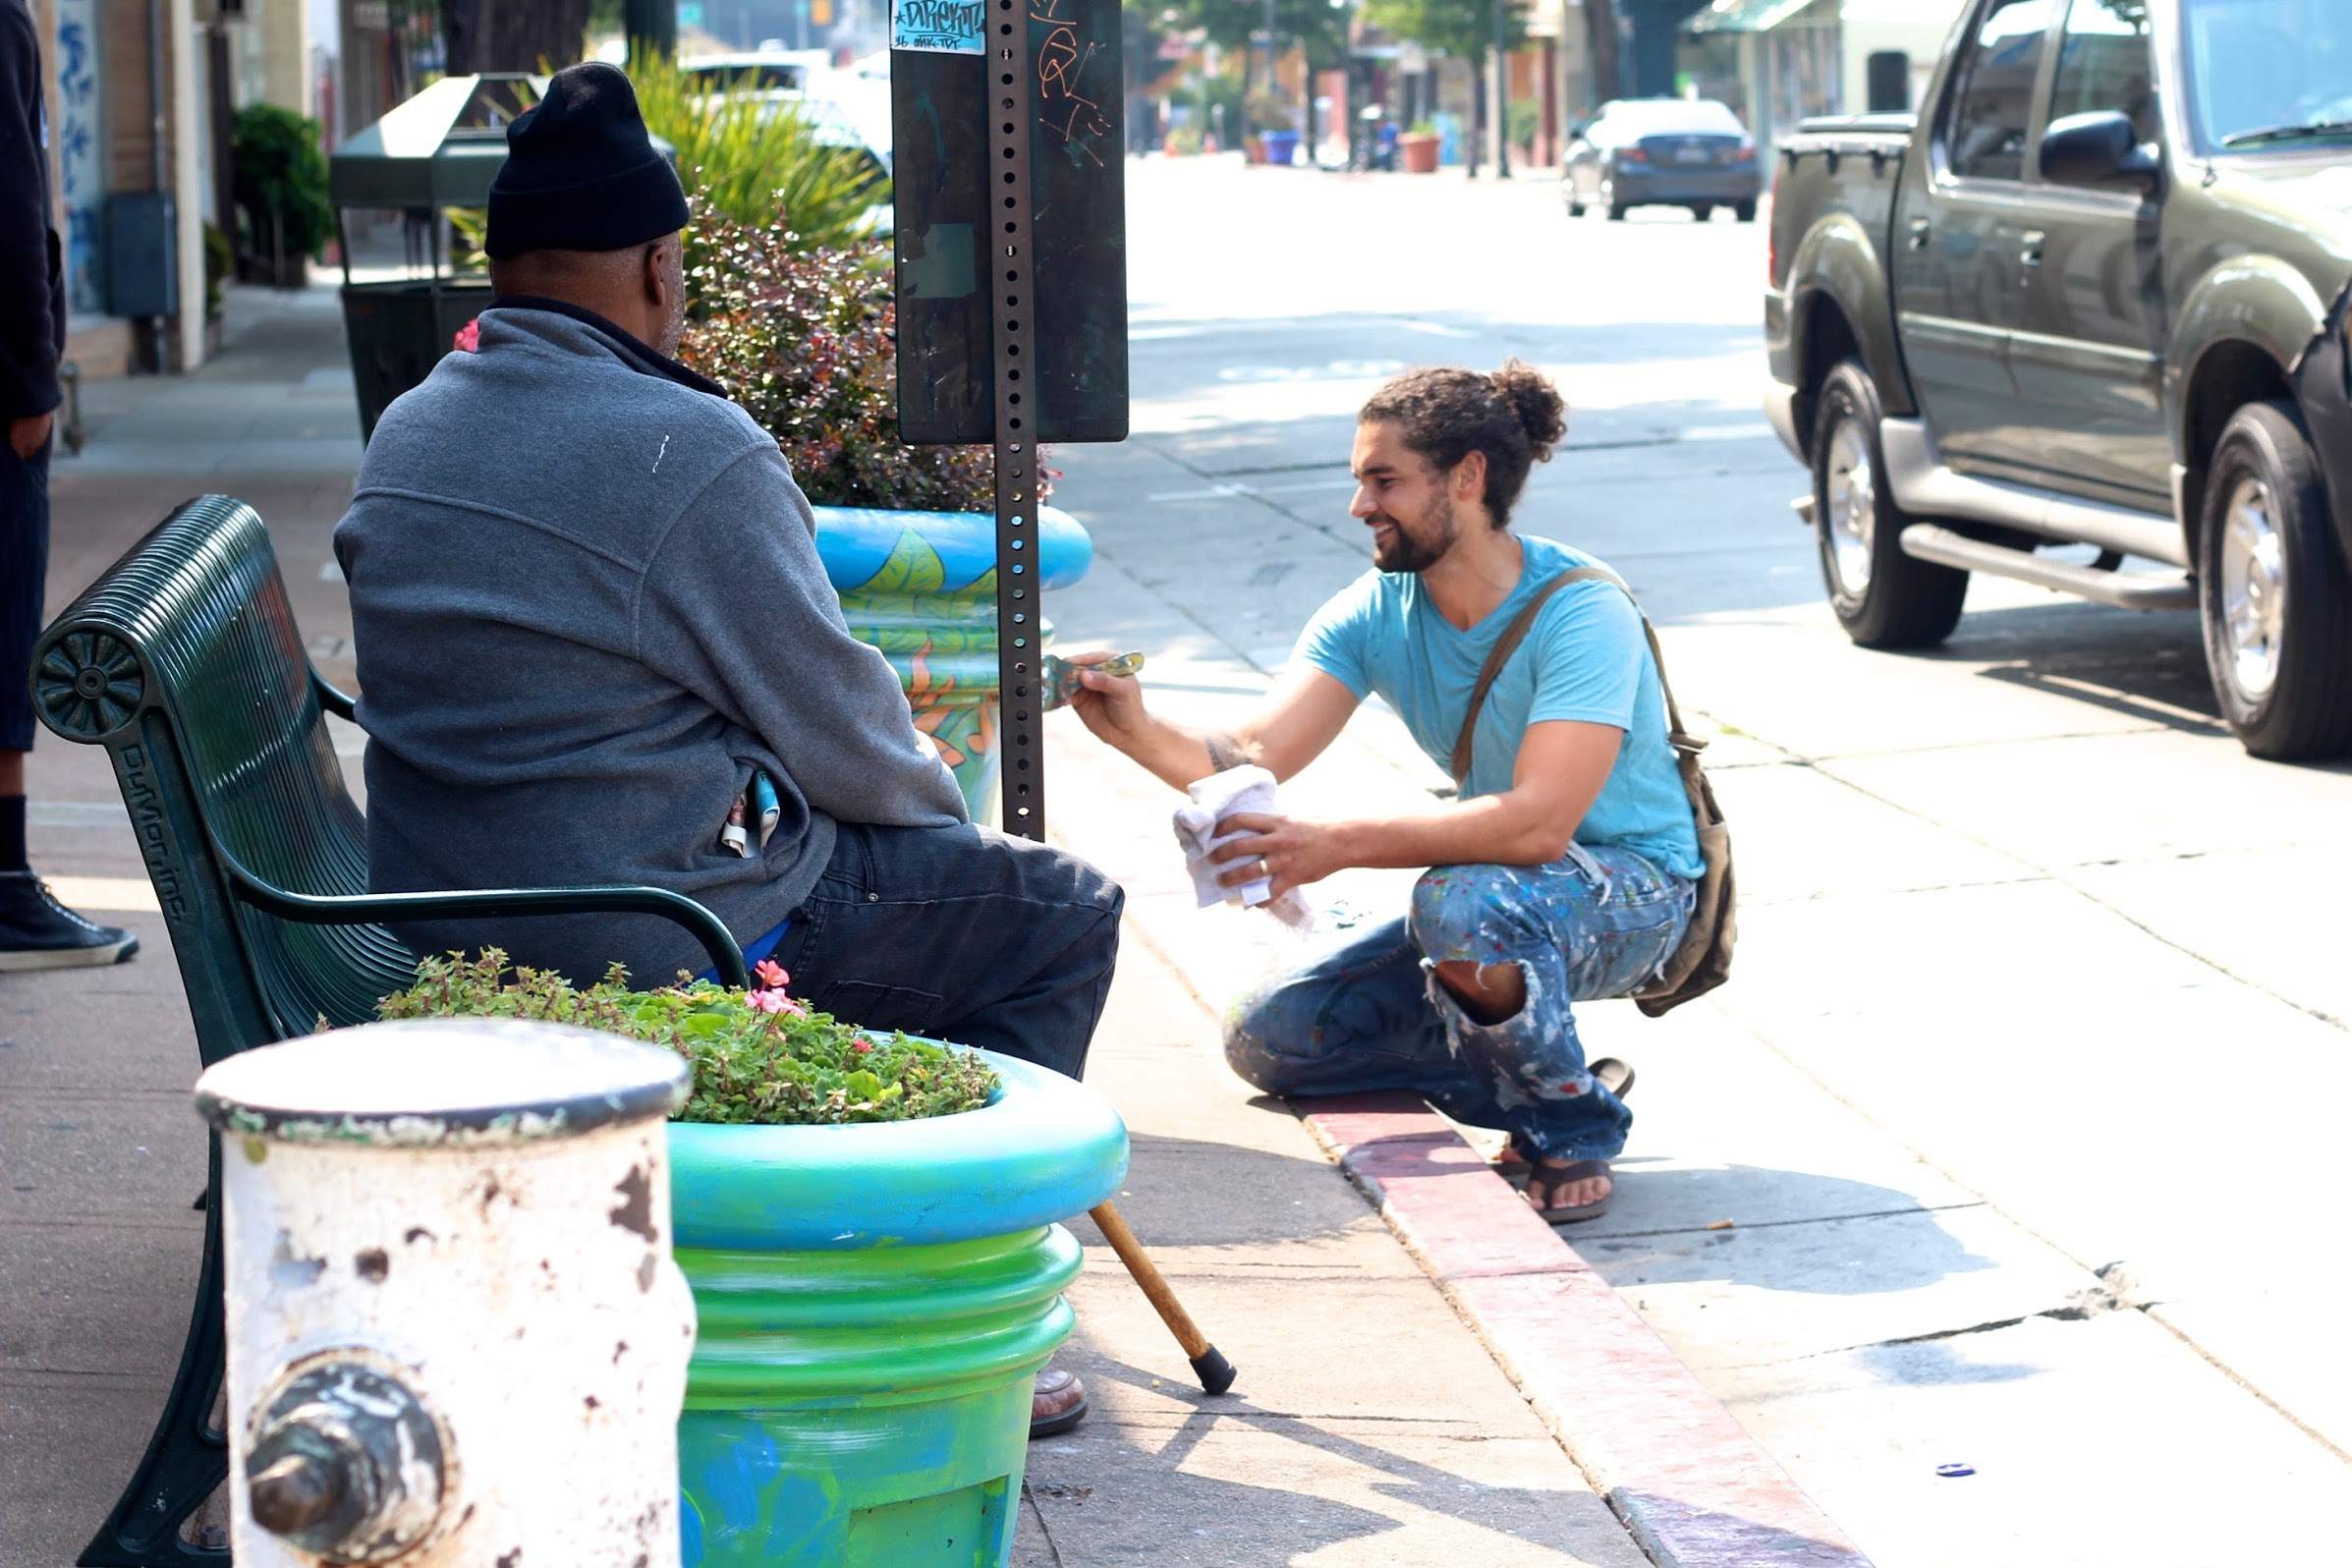 Jack painting a planter on MacArthur at 39th Ave in front of Cafe Santana.